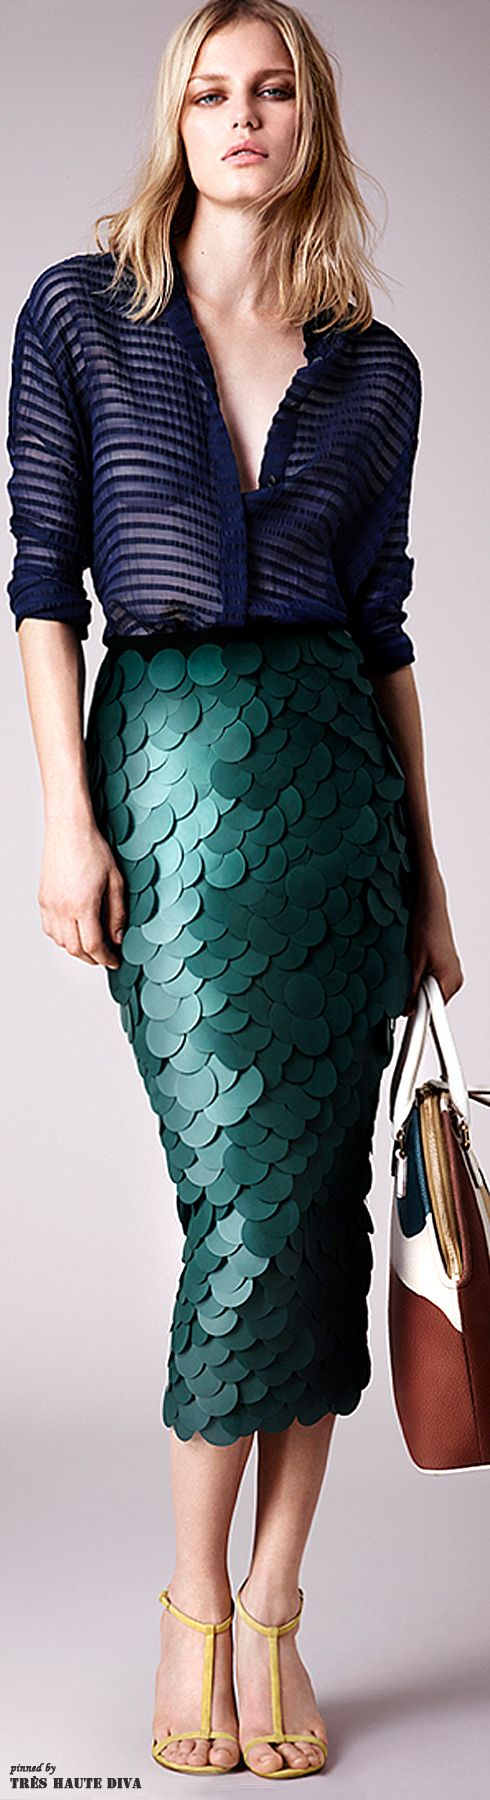 Burberry Prorsum Resort 2015  Love the top.  The skirt needs to be above the knee, right now it looks like it belongs floating on the surf at the beach.